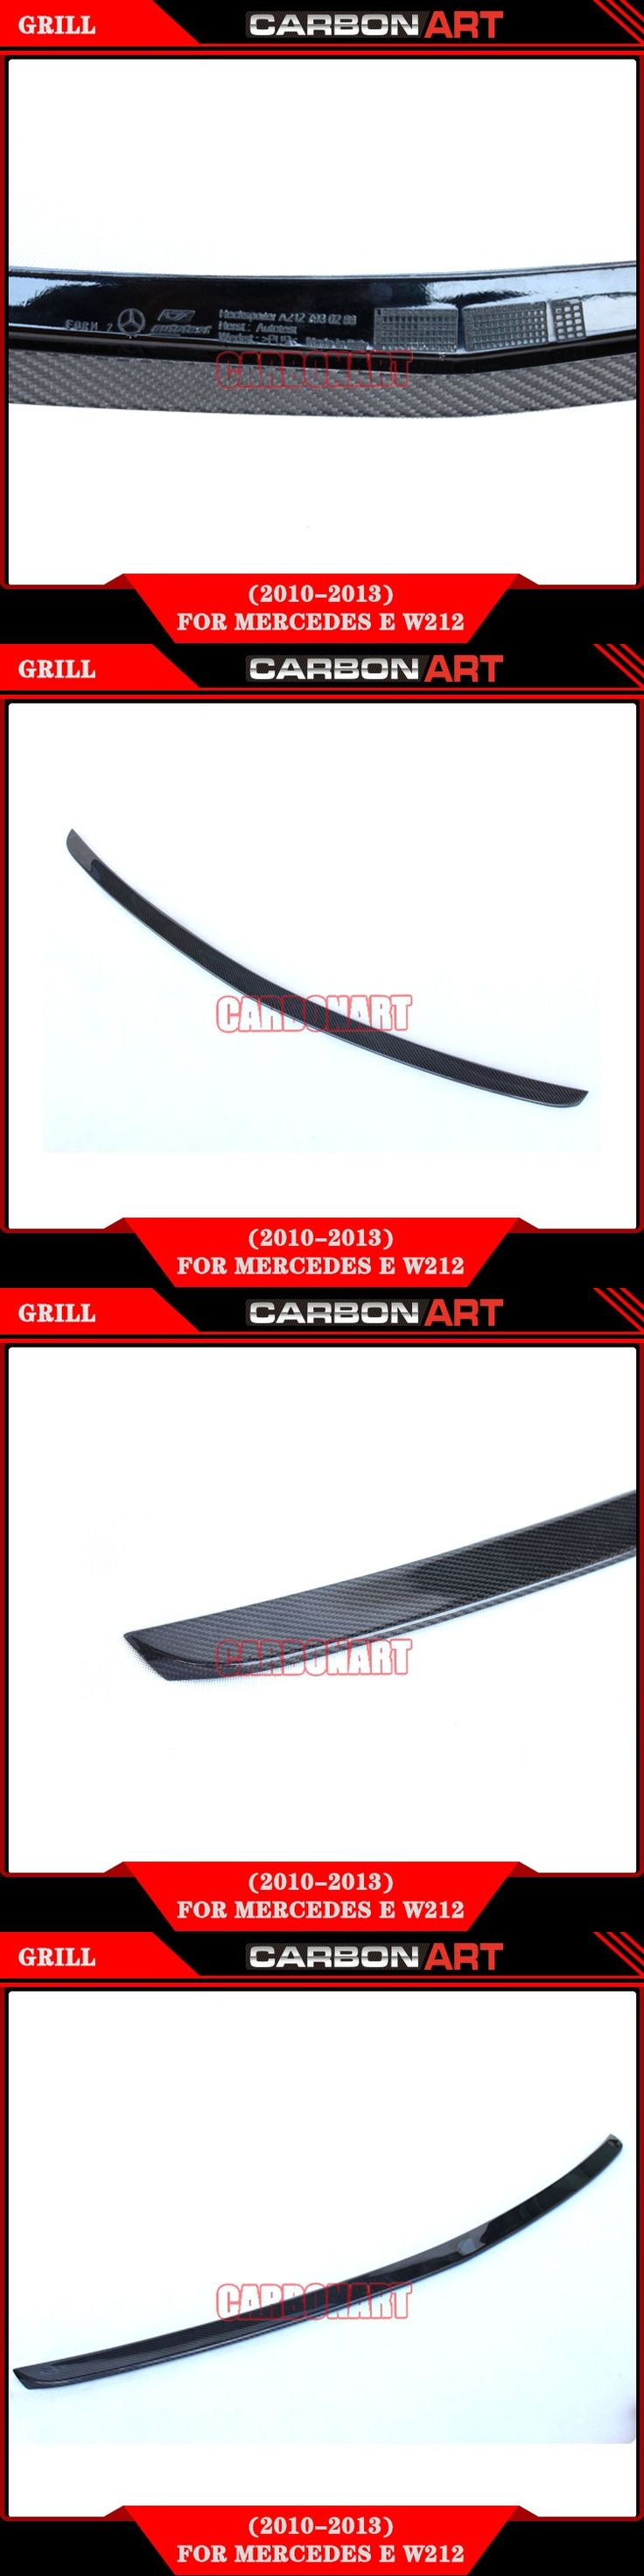 AM-G style glossy black color Mercedes W212 carbon rear spoiler trunk spoiler for mercedes E class W212 2010+